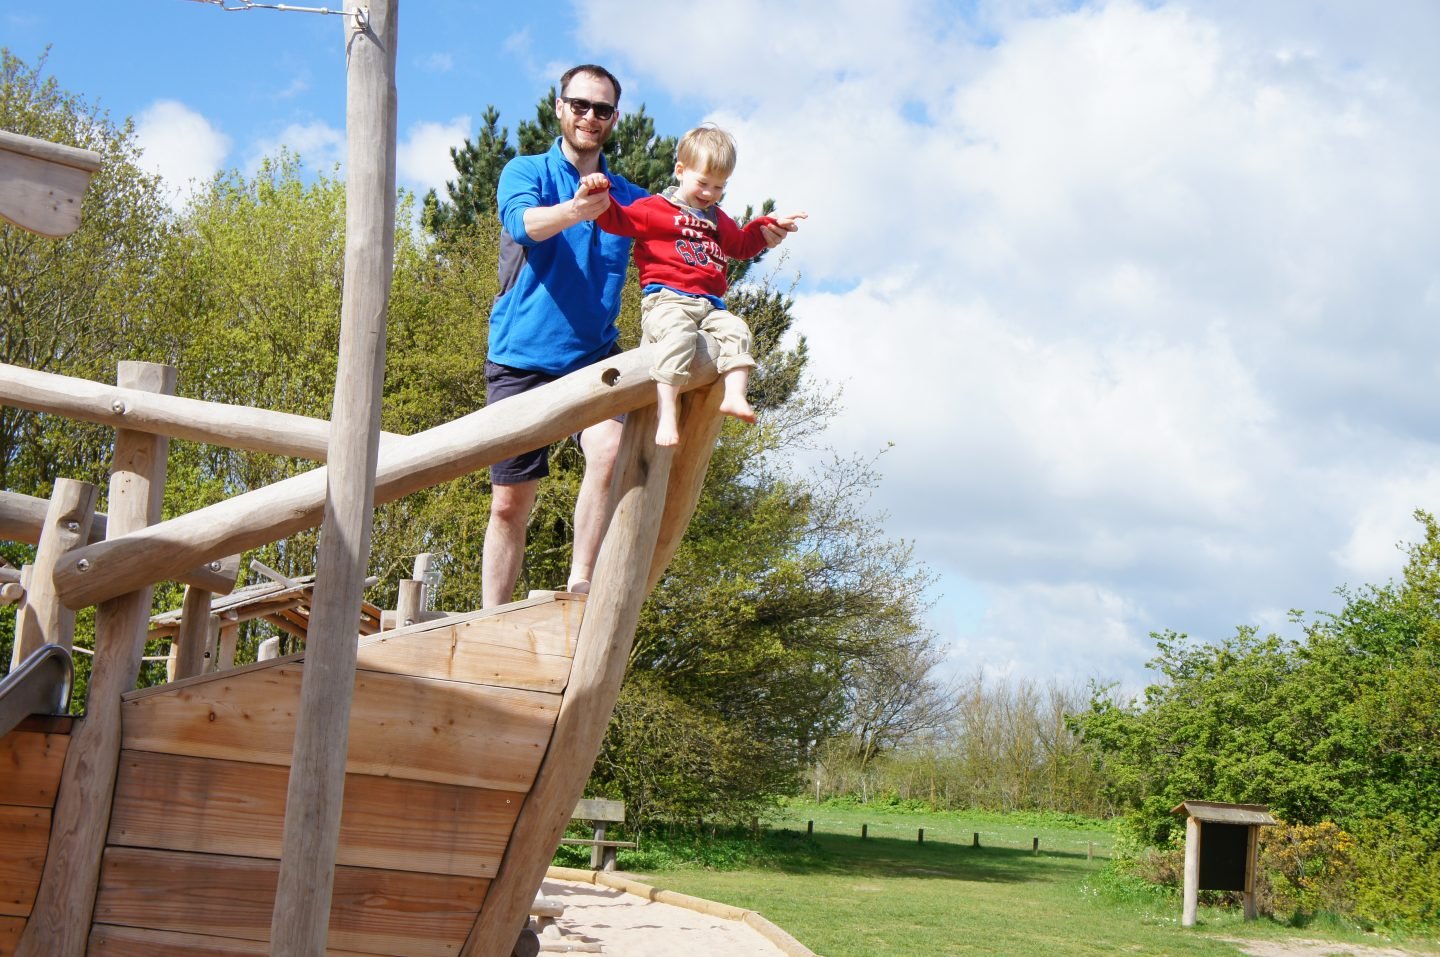 Ed and Nathan at Cudmore Grove country park